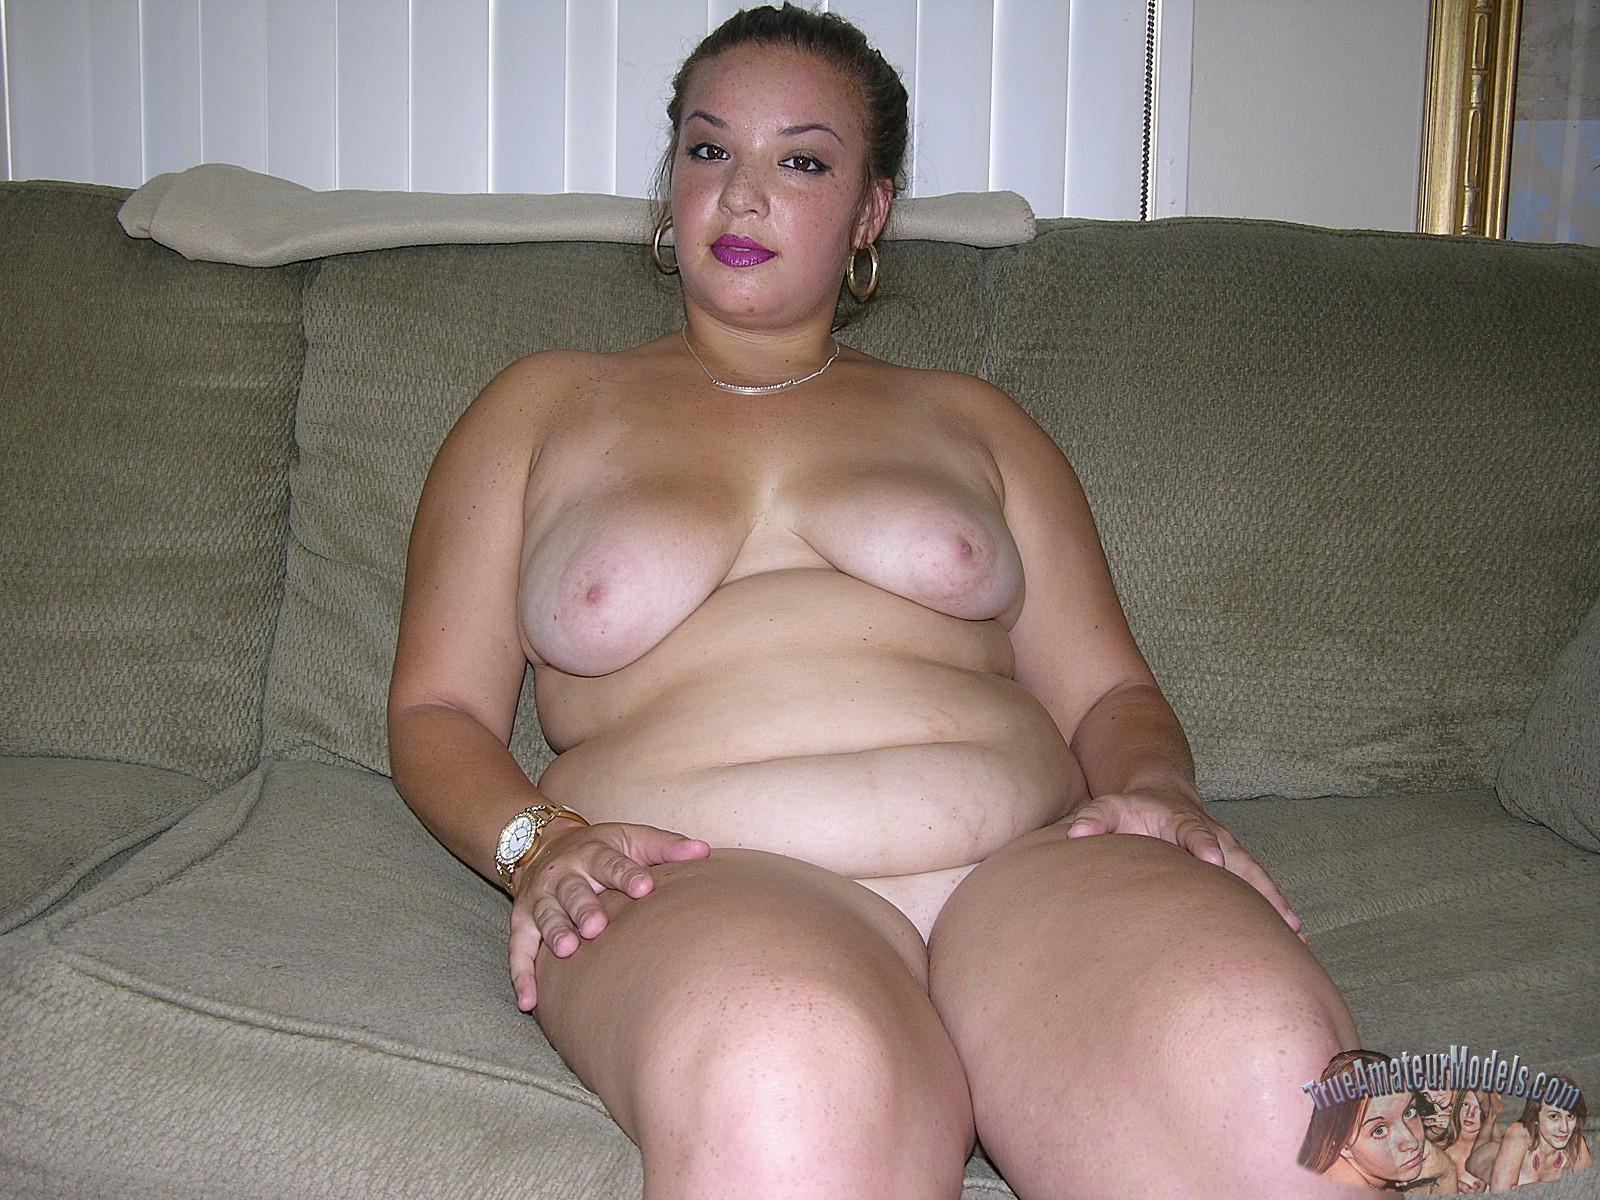 Babe Amateur Video Gallery